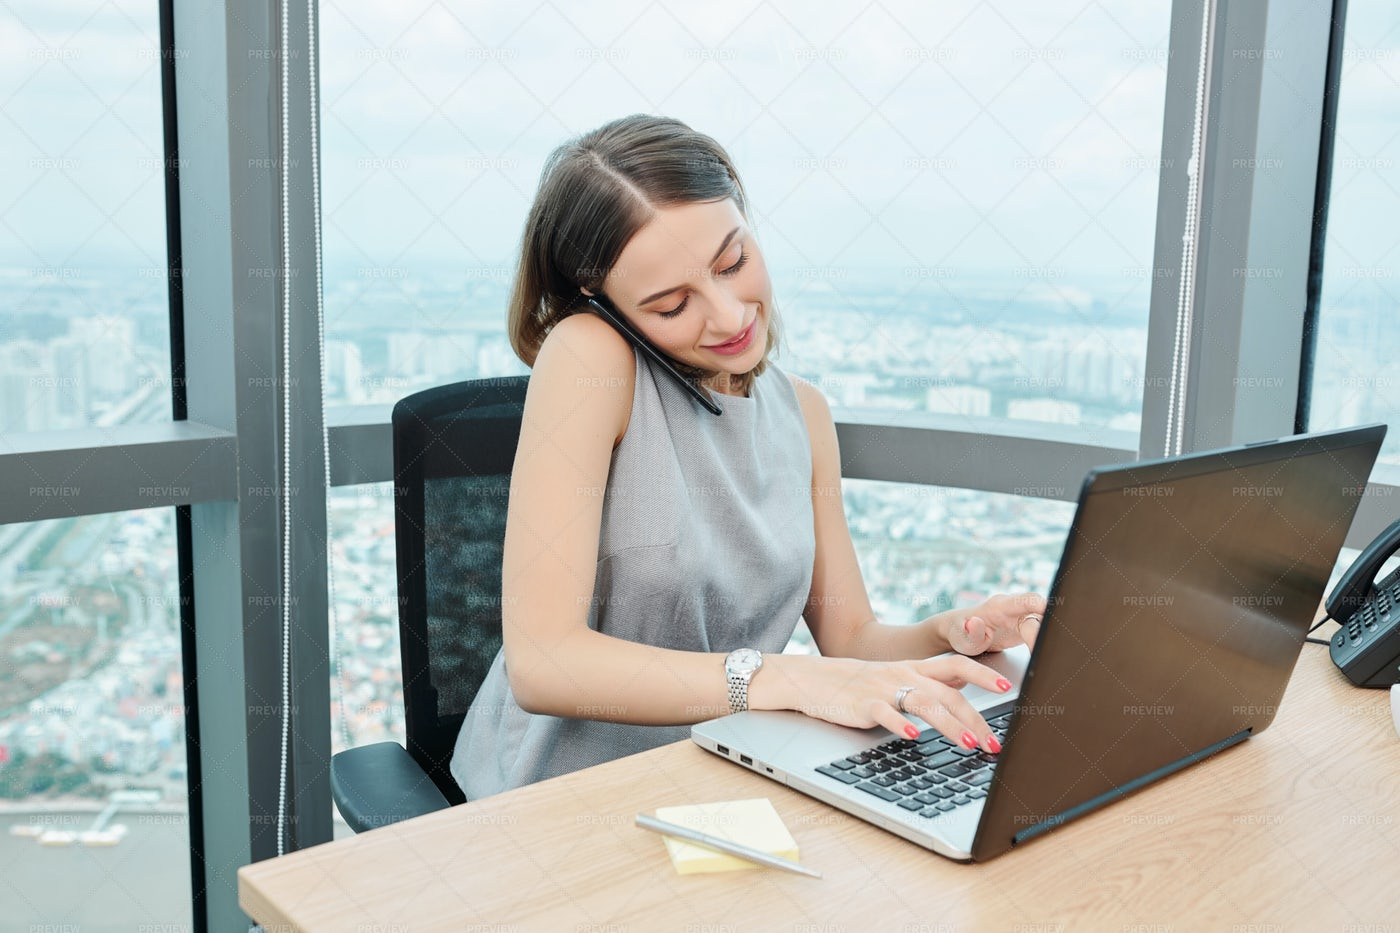 Business Lady Working In Modern Office: Stock Photos